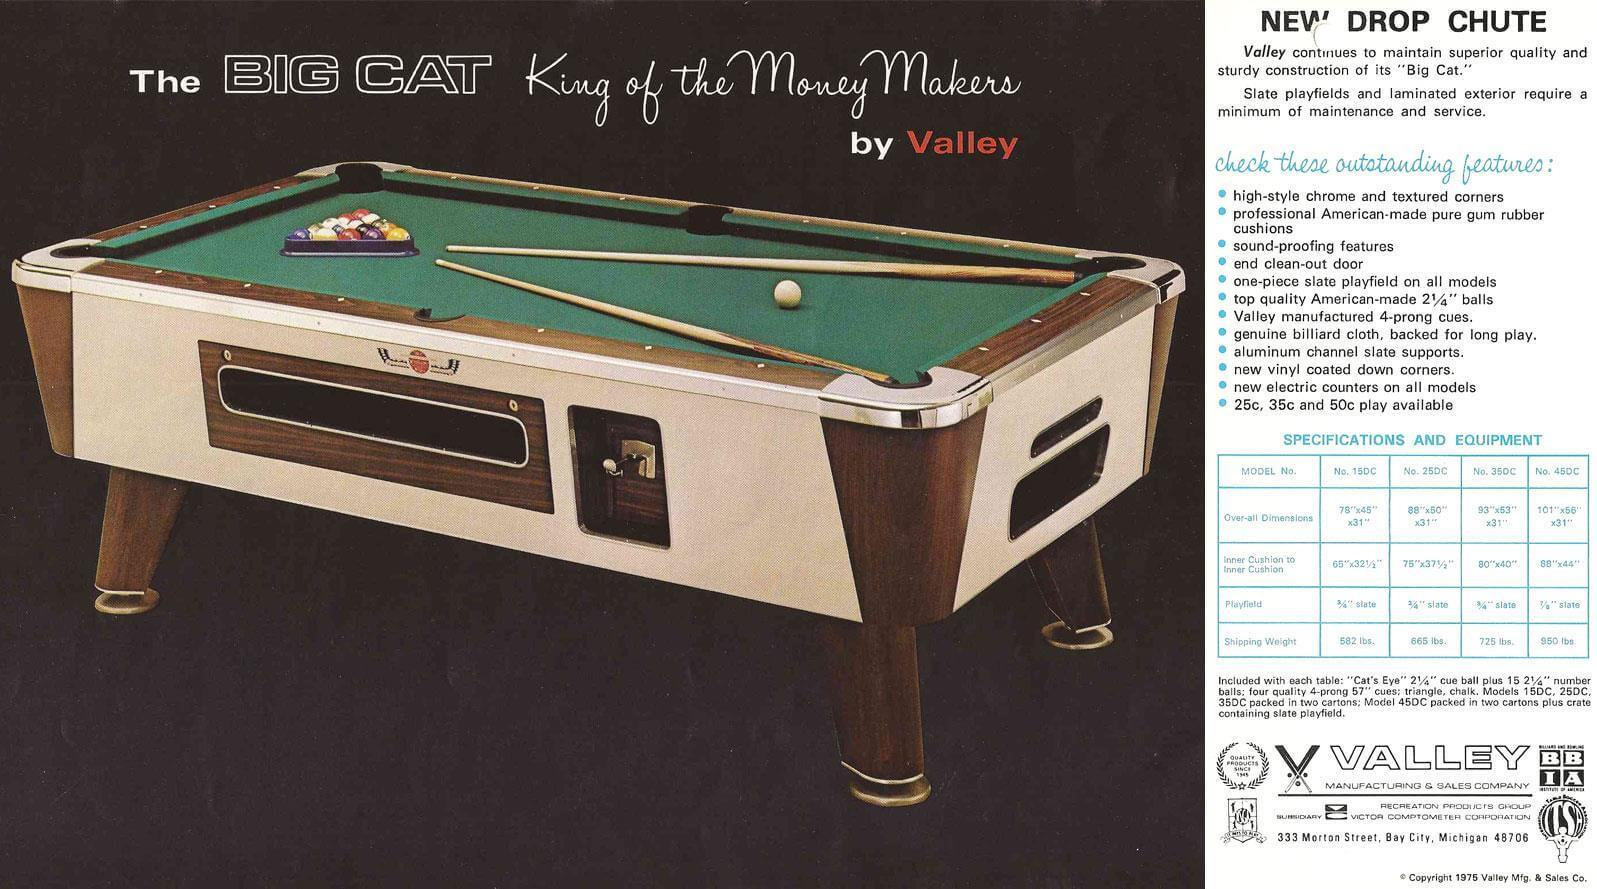 valley-big-cat-pool-table-1975.jpg